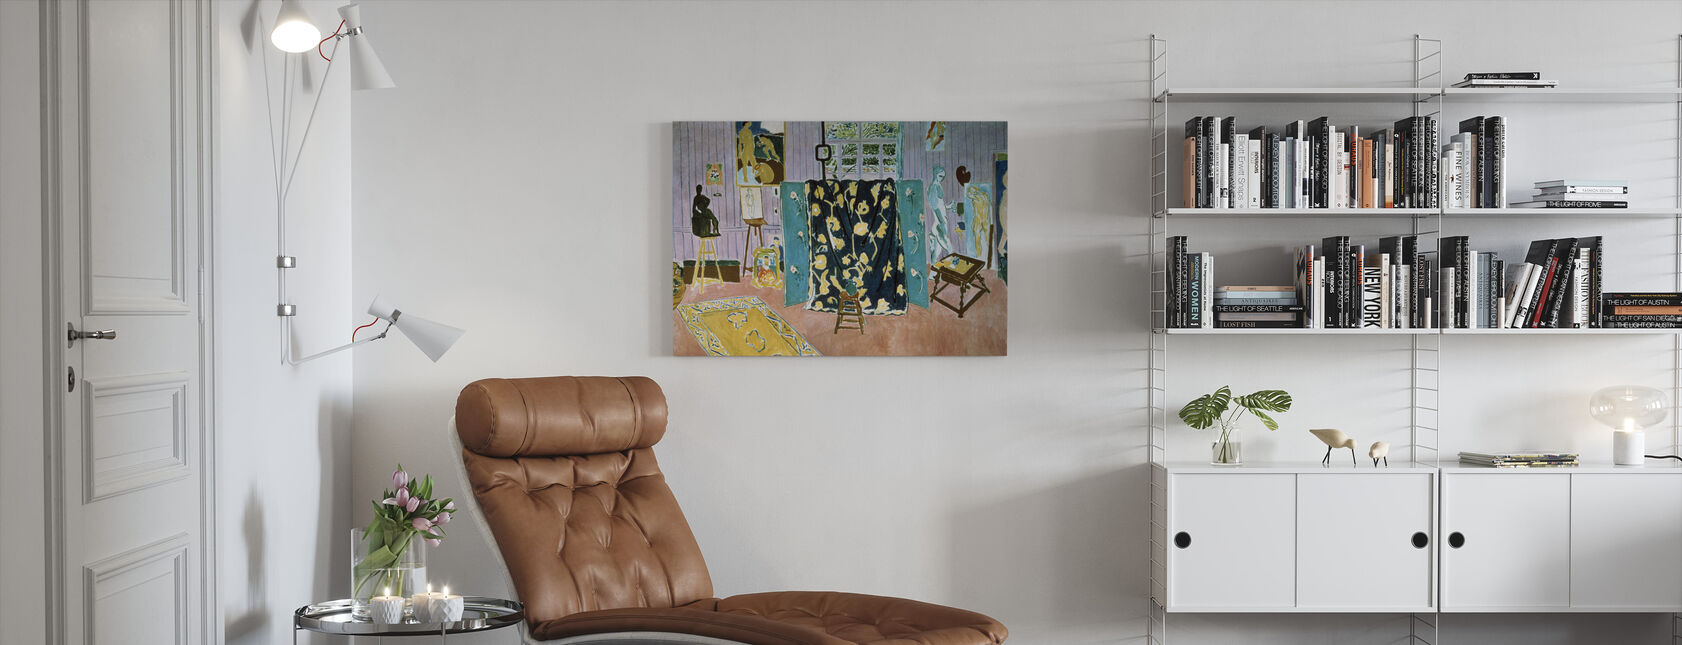 Atelier of the Painter - Henri Matisse - Canvas print - Living Room